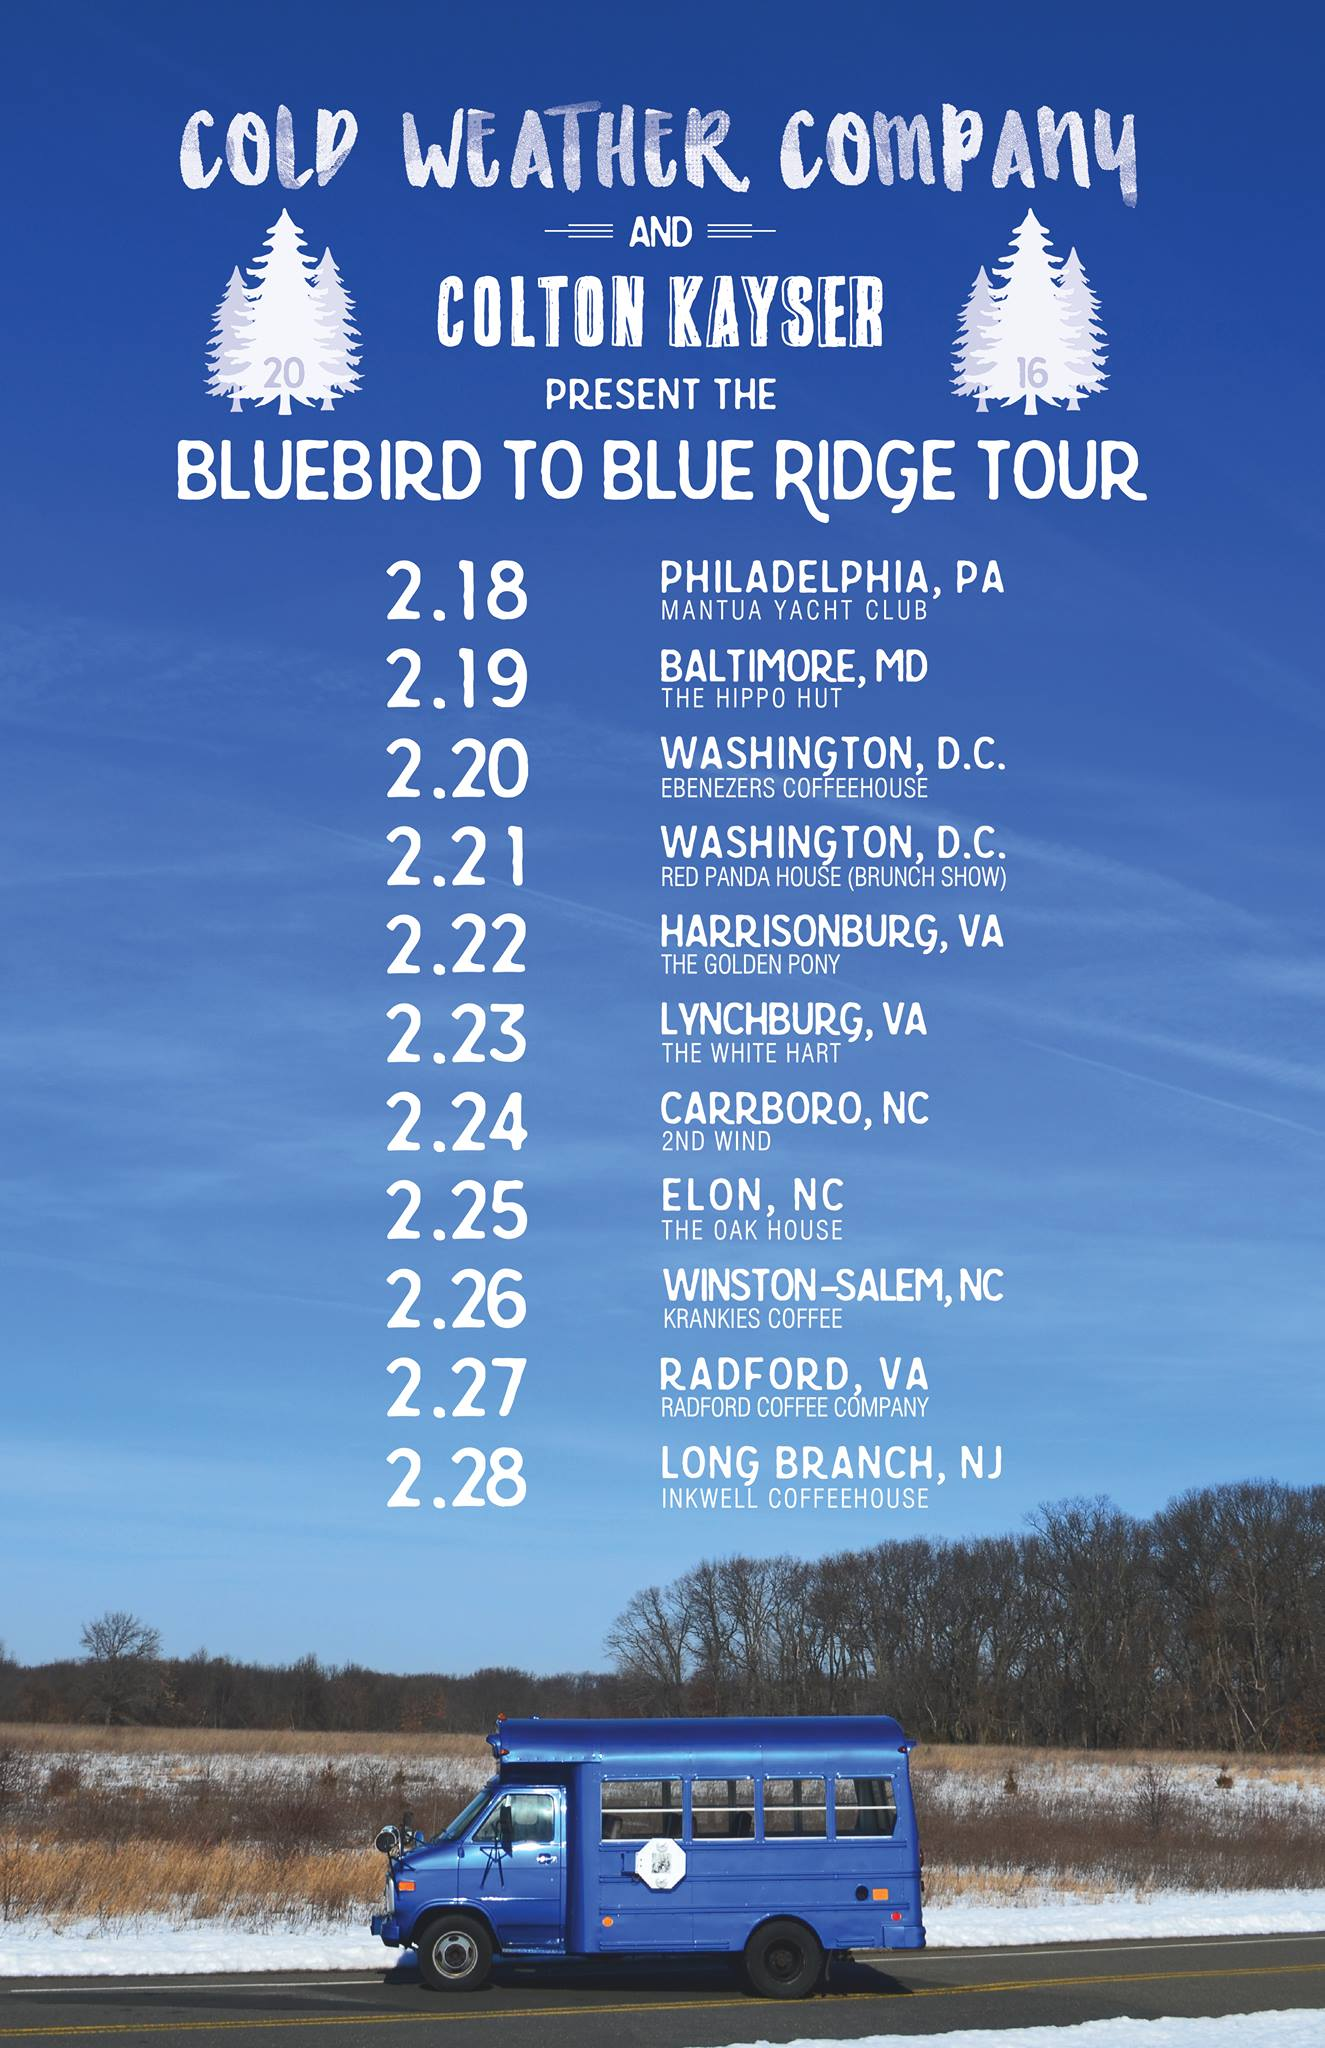 2.18.16 - We took Bluebird on its biggest test yet, the 'Bluebird to Blue Ridge Tour' -and made it back in one piece!